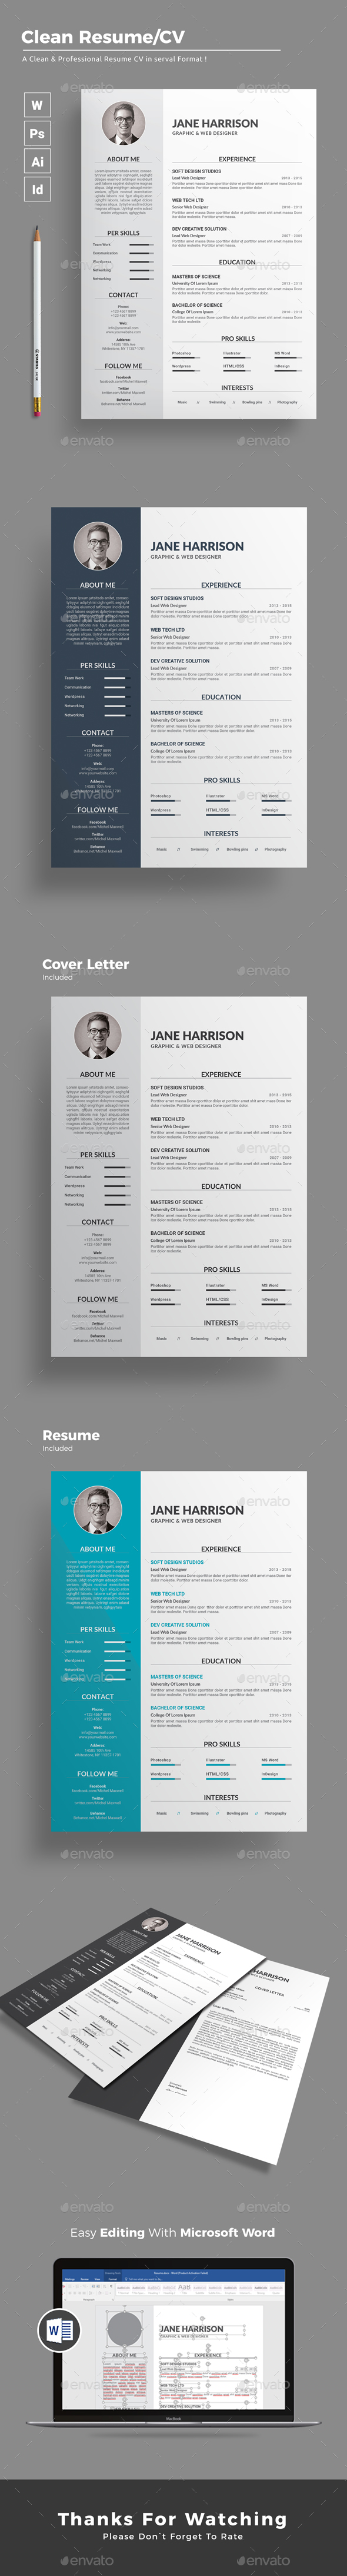 Direct Support Professional Resume Resume By Themedevisers  Graphicriver Top Resume Writing Services Reviews Pdf with Bullet Point Resume Excel Resume  Resumes Stationery Free Resume Service Excel